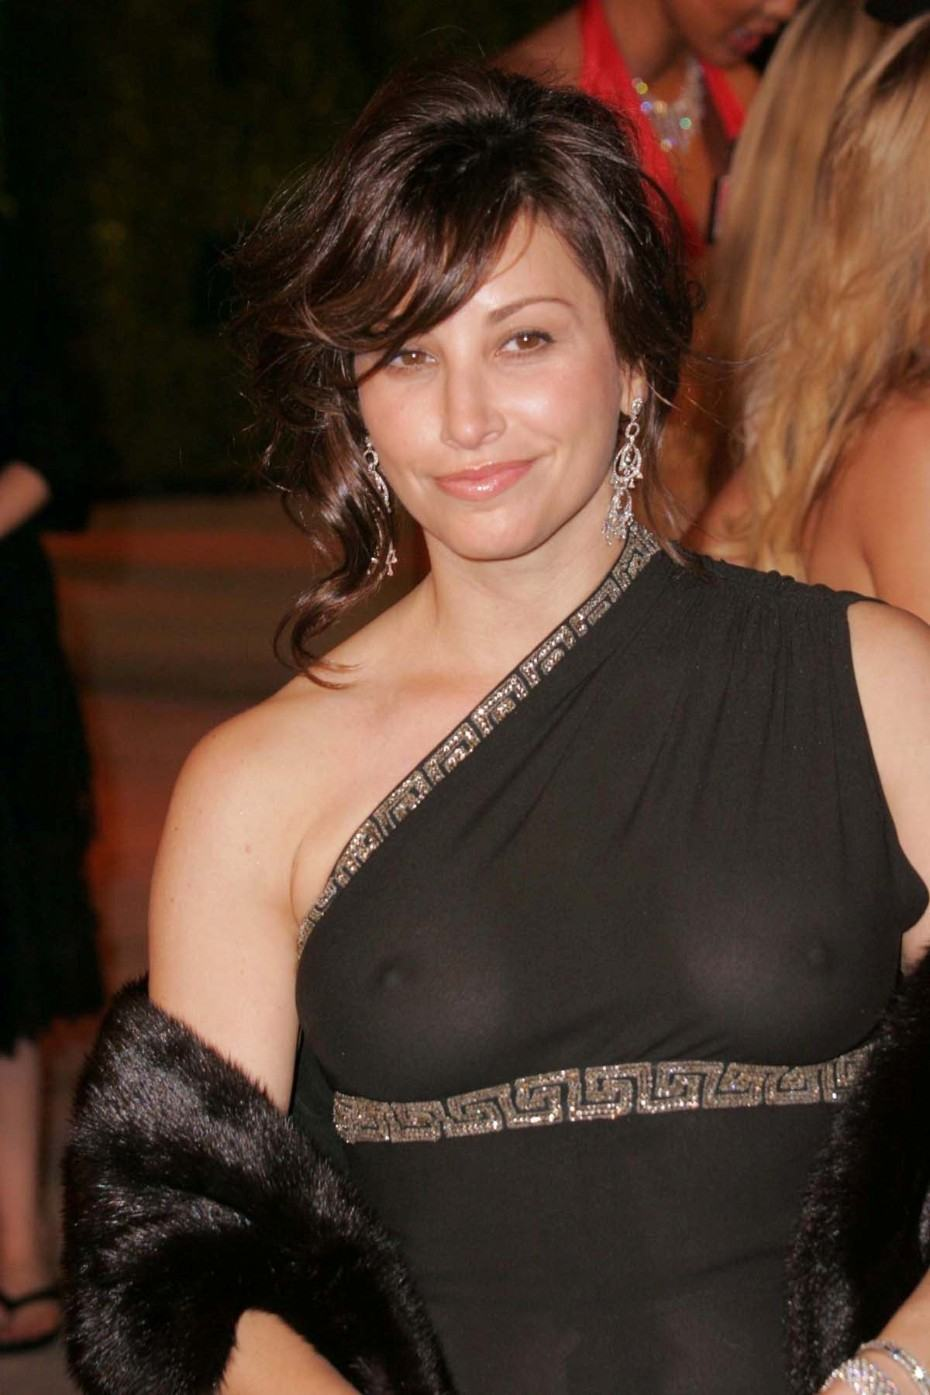 Gina Gershon Nude Boobs Under Dress